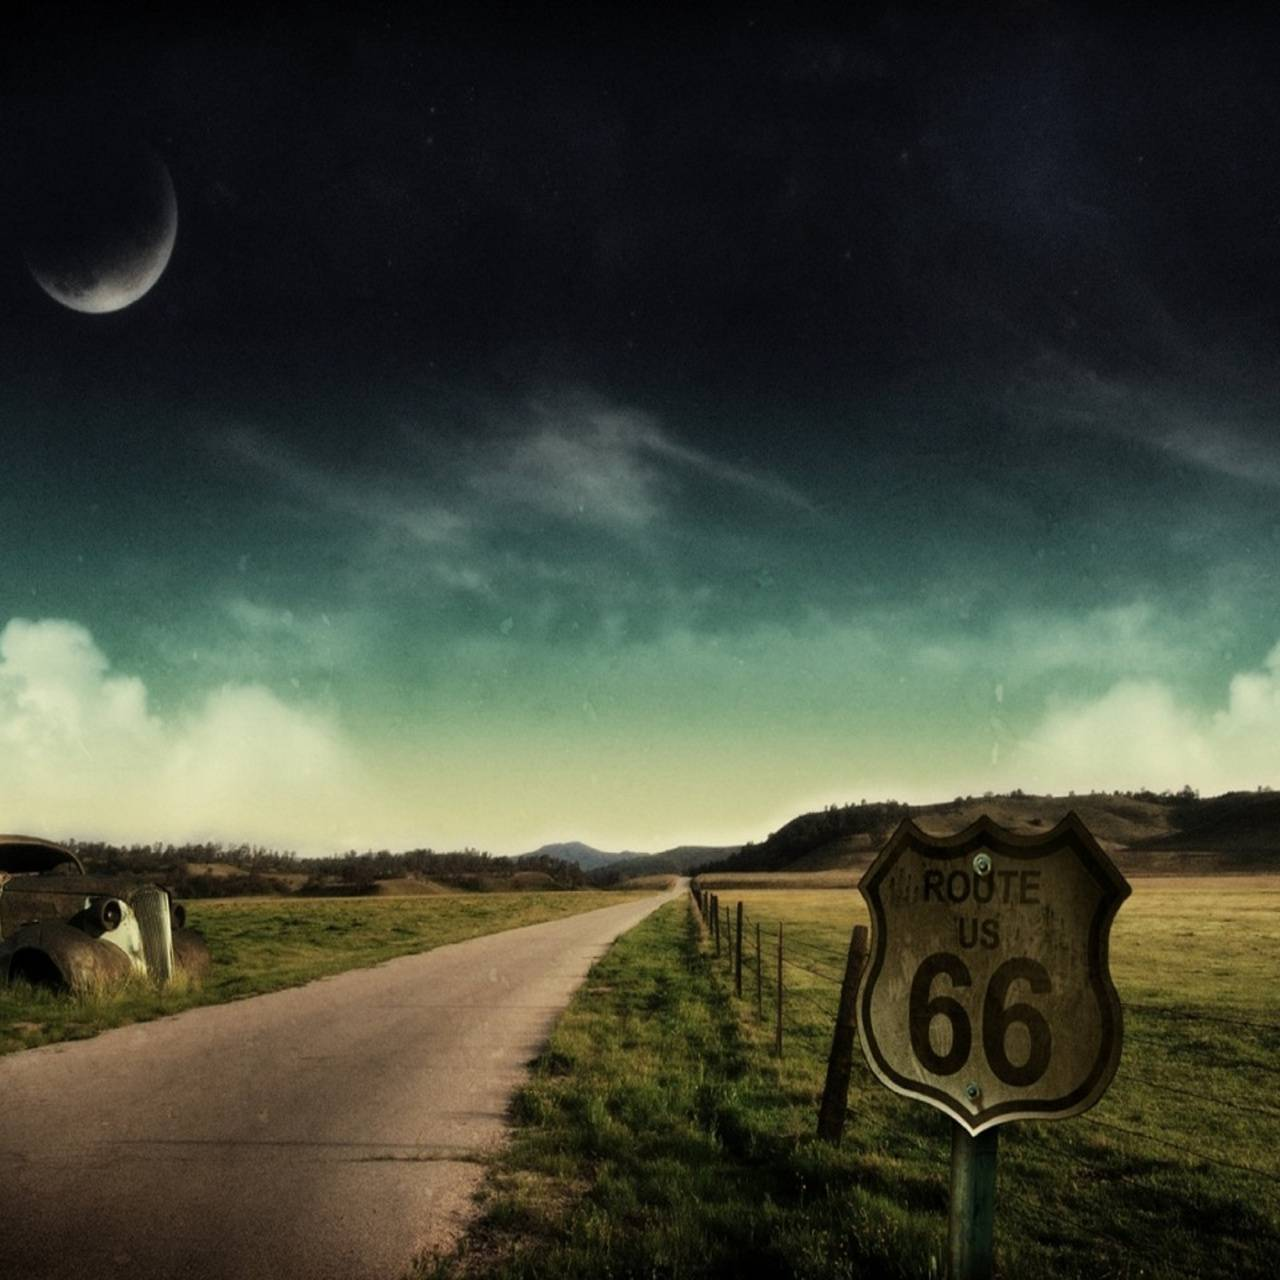 Route-66